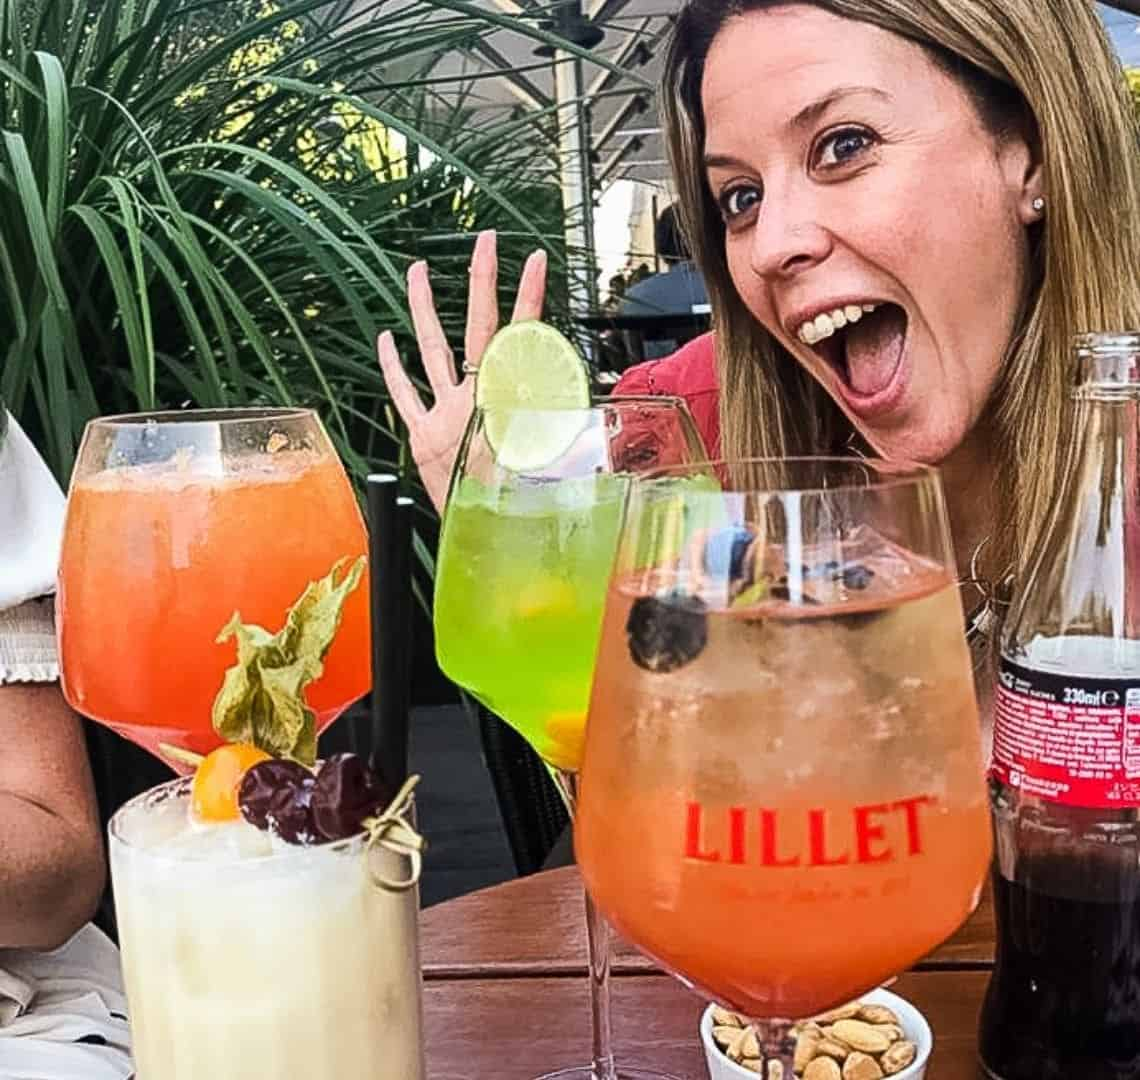 There are four drinks on the table, two are orange aperol sprites, between them, one is a bright green concoction with a slice of lim wedges onto the side of the galss, in the foreground, there is a creamy white drink in a tall glass with some fruit on a little skewer balanced on the top. I am in the background smiling with my mouth wide open and my hand splayed, palm towards the camera. Behind me is some green foliage.